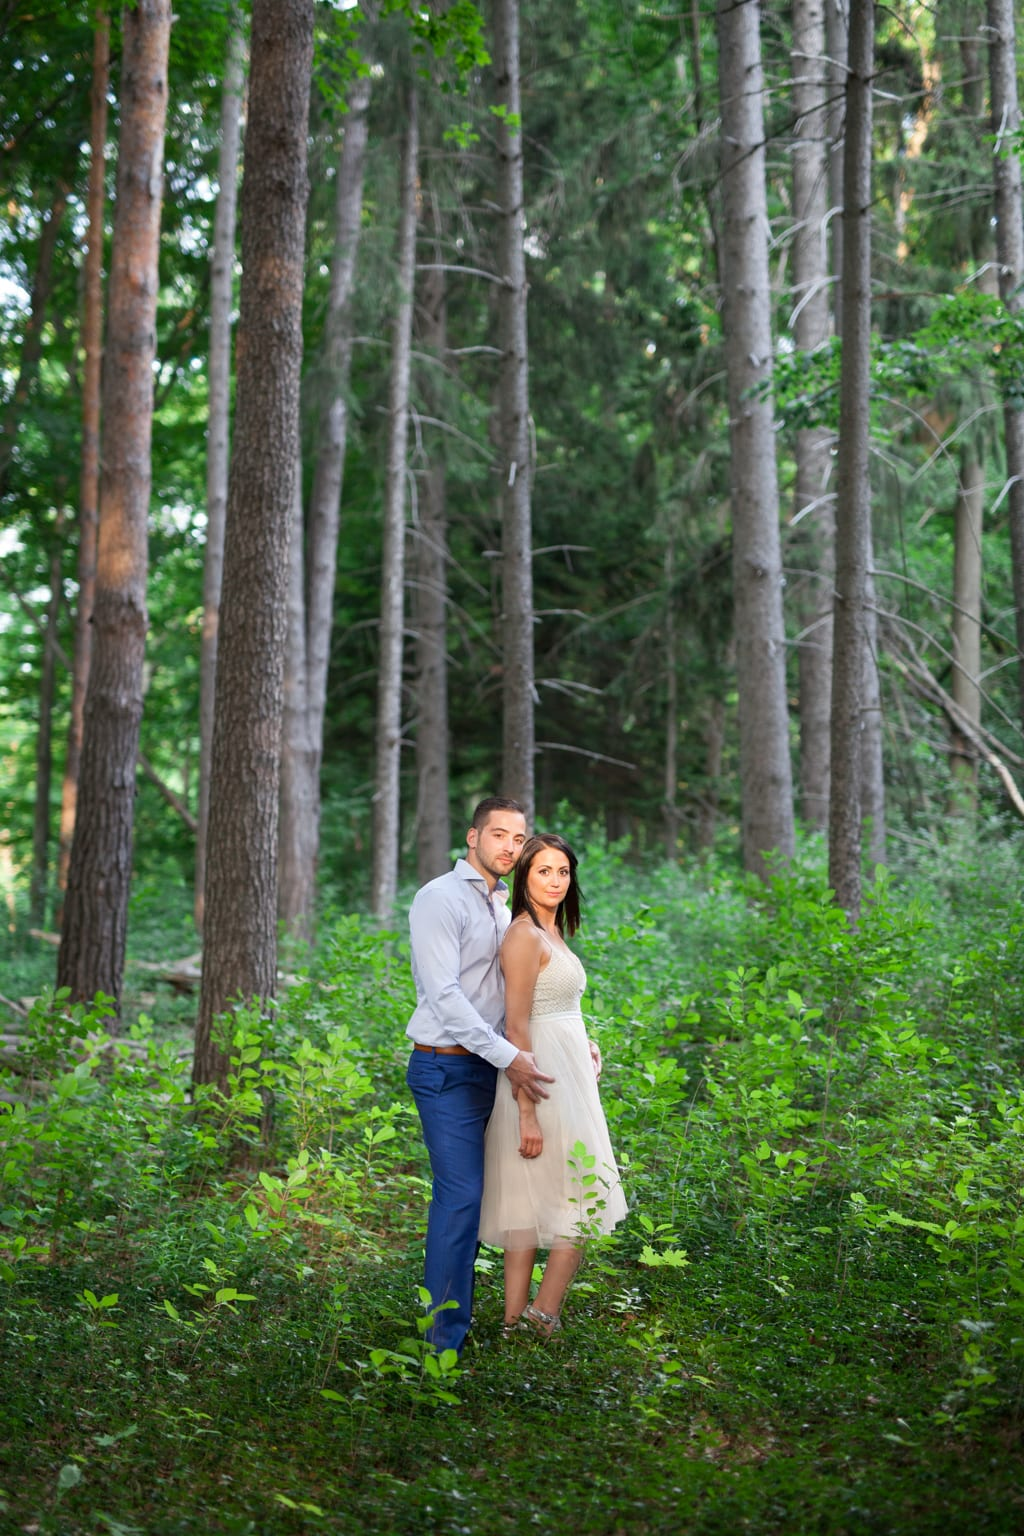 Sunset-Light-Forest-Engagement-Zsuzsi-Pal-Photography